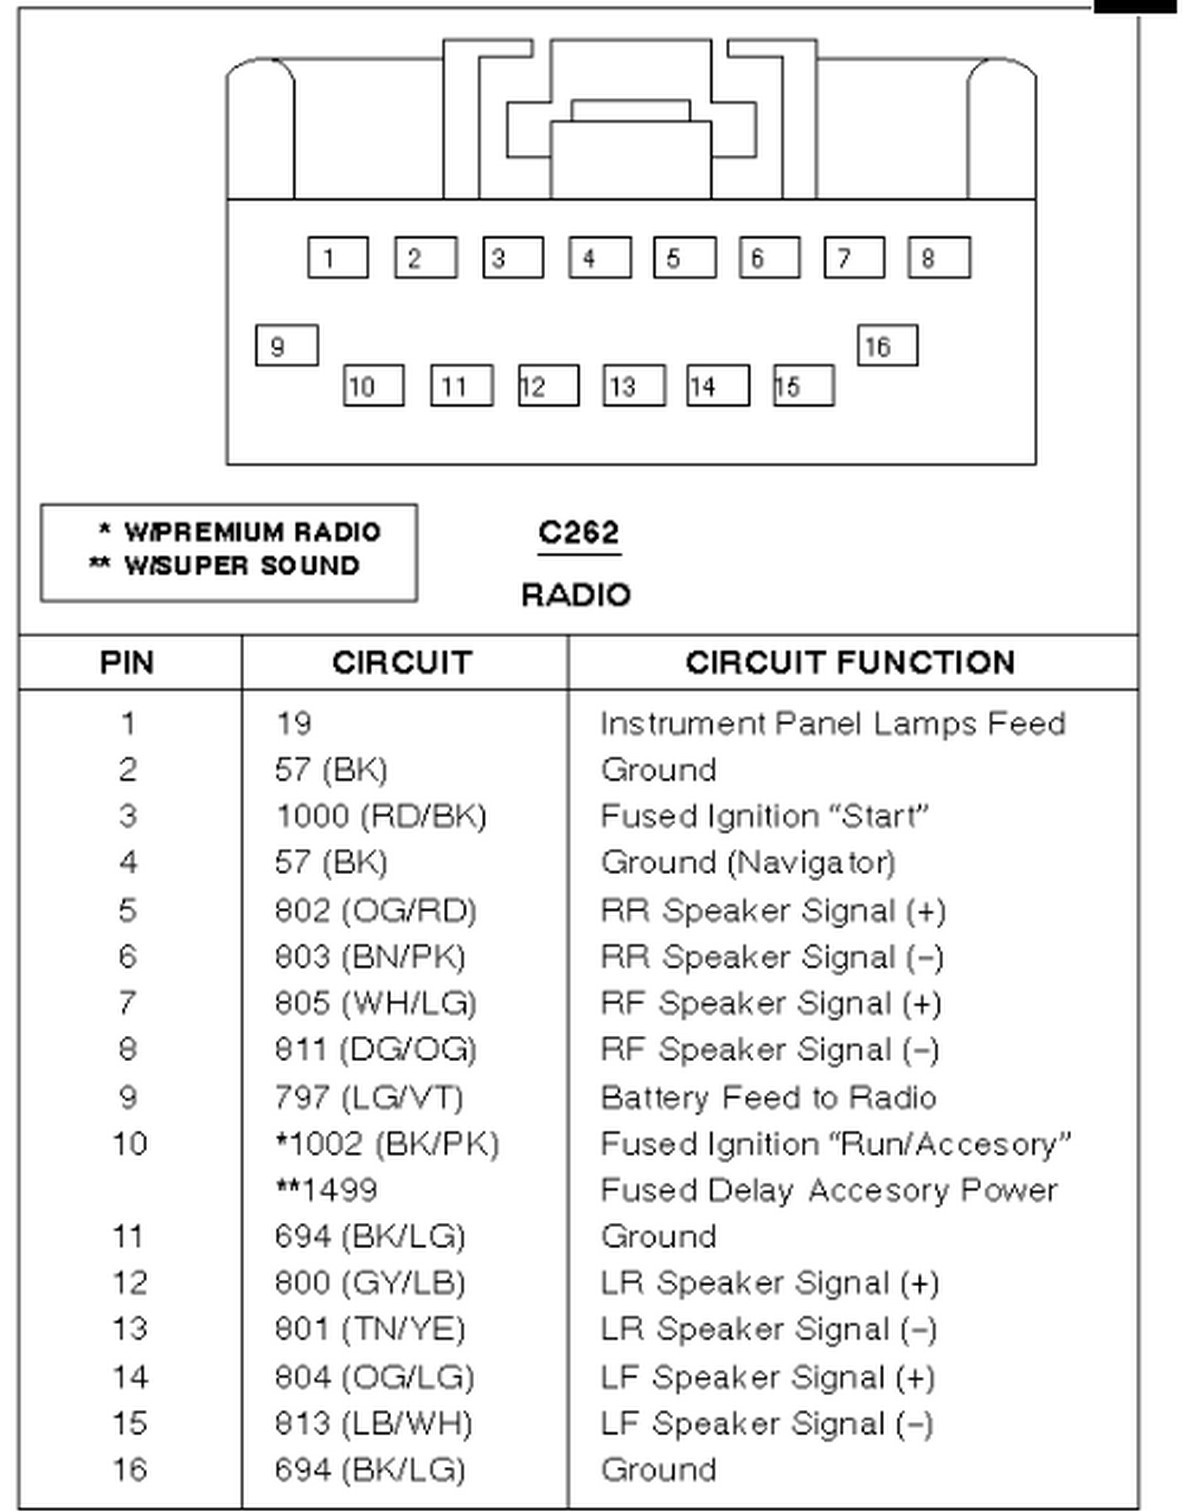 2002 Ford F350 Stereo Wiring Diagram - Wiring Diagrams Schematics  Ford F Wiring Diagram on 2000 dodge ram 1500 wiring diagram, 1998 ford f-150 wiring diagram, 2000 subaru forester wiring diagram, 2003 ford excursion wiring diagram, 2000 dodge ram 2500 wiring diagram, 2000 honda crv wiring diagram, 2000 toyota tacoma wiring diagram, 2000 gmc safari wiring diagram, 2000 lincoln town car wiring diagram, 2000 jeep grand cherokee wiring diagram, 2000 dodge grand caravan wiring diagram, 2000 toyota land cruiser wiring diagram, 2000 pontiac grand am wiring diagram, 2003 ford crown victoria wiring diagram, 2002 ford f-150 wiring diagram, 2000 vw new beetle wiring diagram, 2000 chevy suburban wiring diagram, 1988 ford f-150 wiring diagram, 2000 toyota sienna wiring diagram, 2003 ford f-150 wiring diagram,